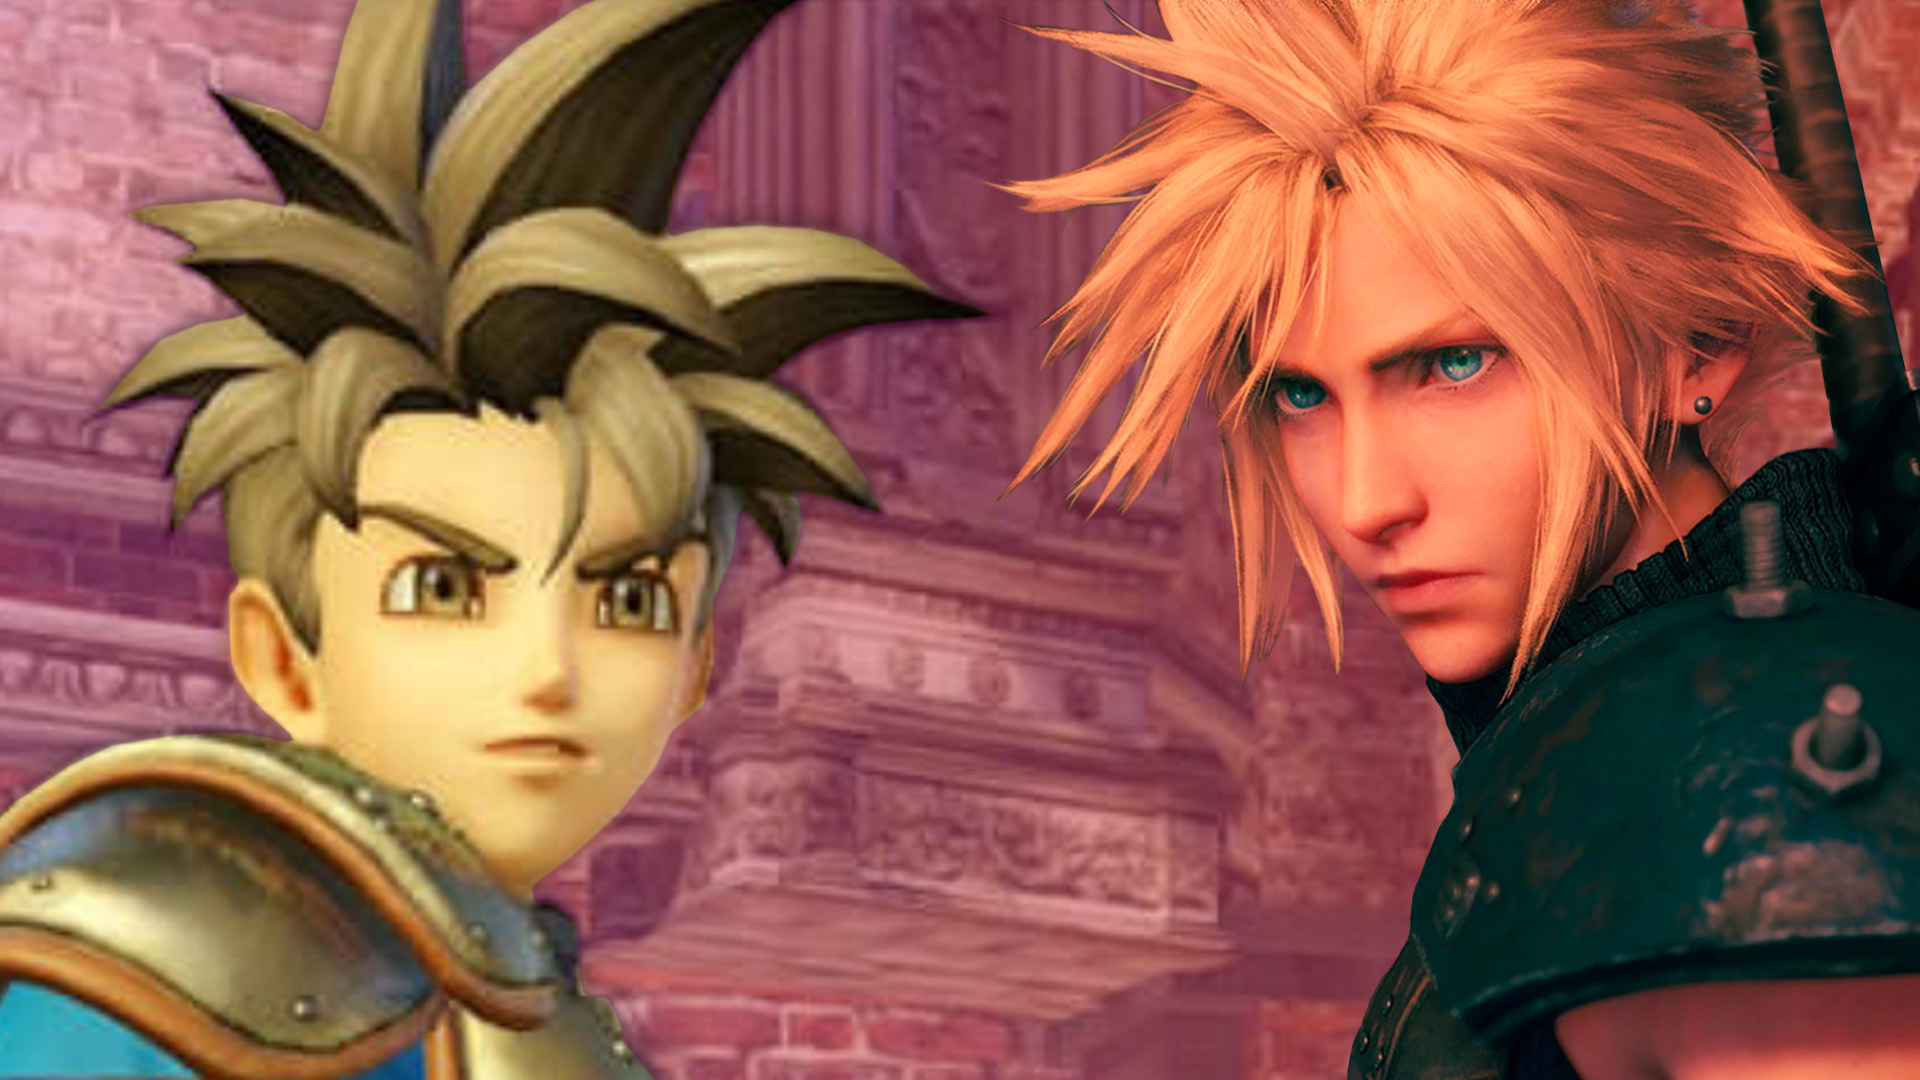 Final Fantasy's Cloud Strife and Dragon Quests's Hero stand face to face